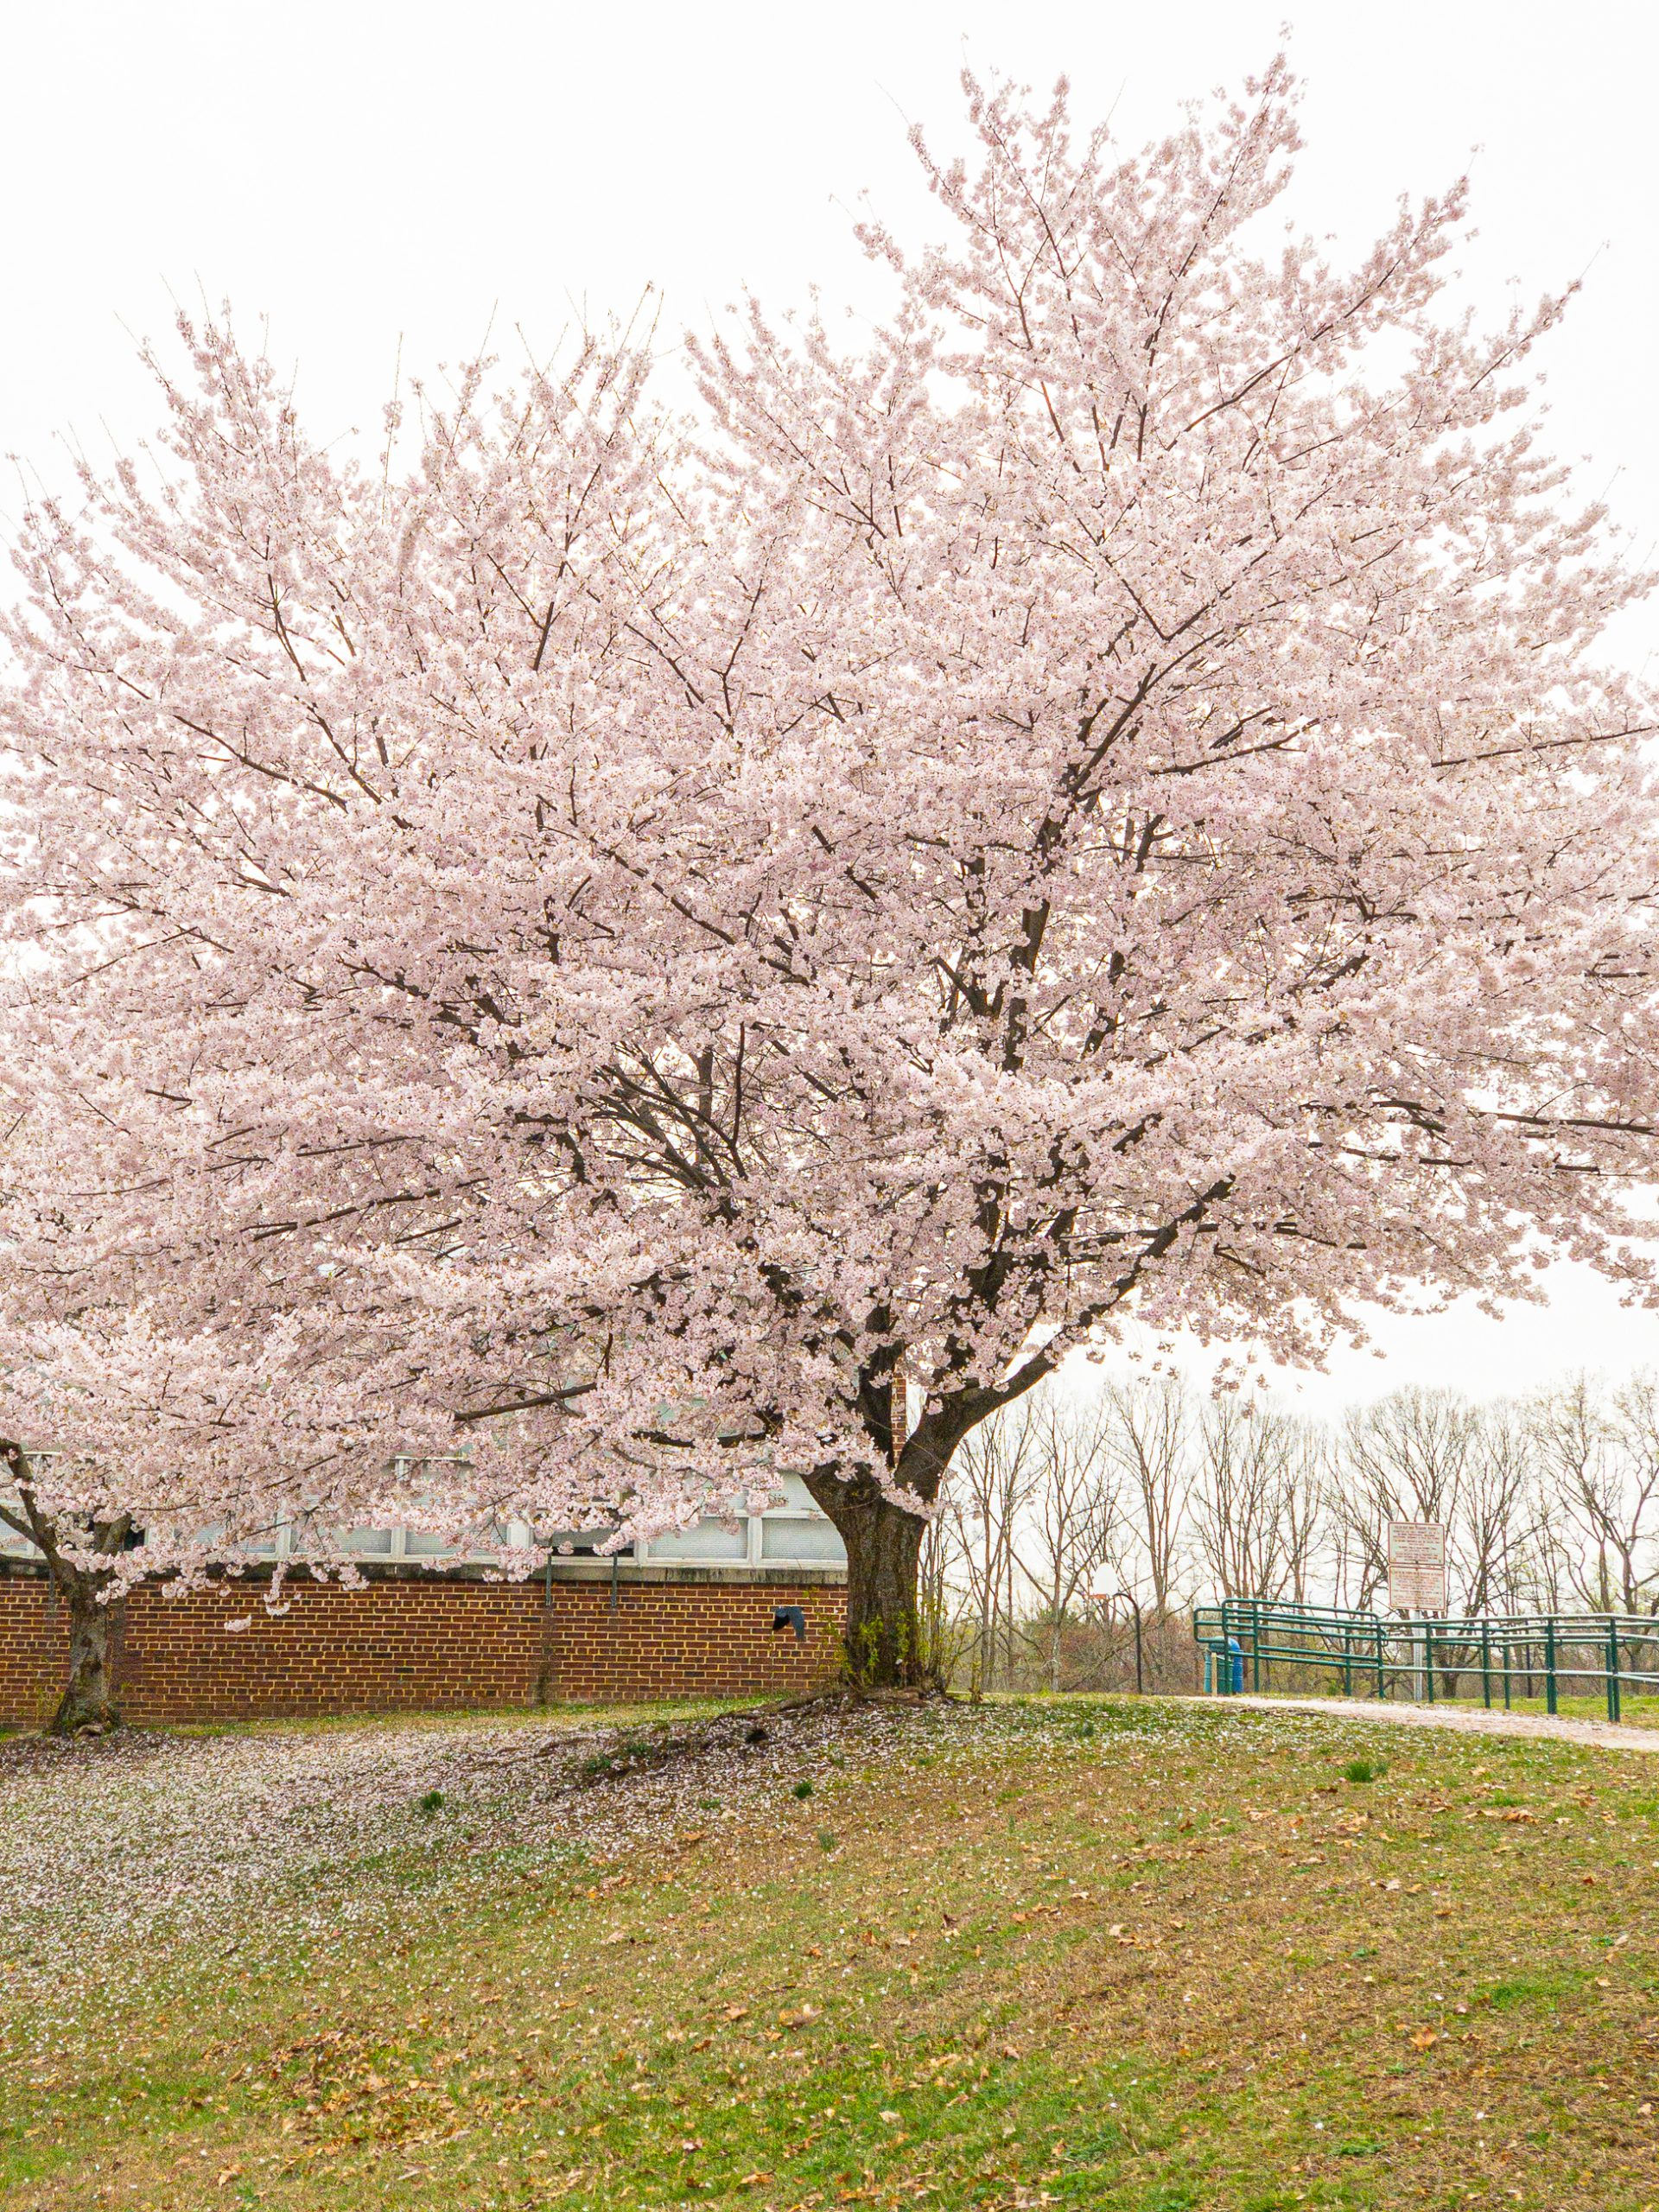 Falls Church cherry blossom tree in full bloom